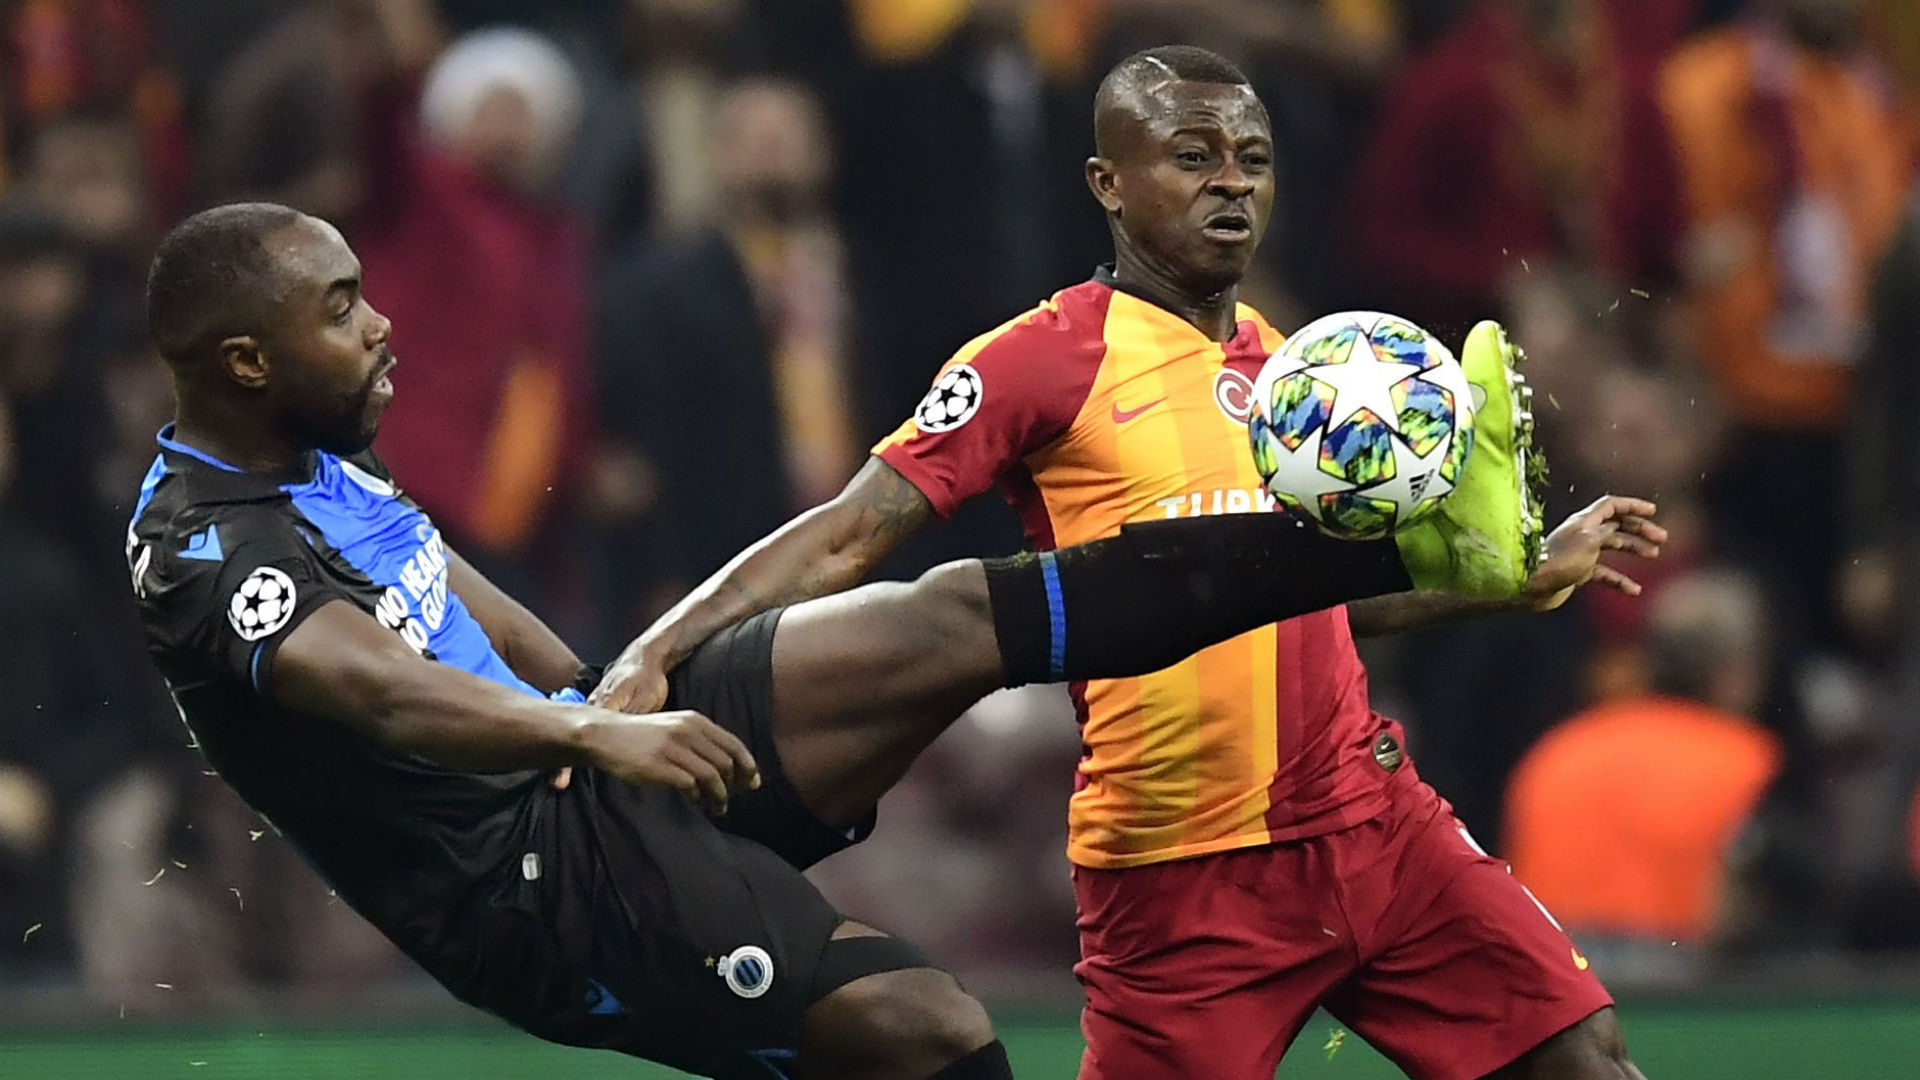 Galatasaray 1-1 Club Brugge: Late drama in Istanbul as draw sends Real Madrid through